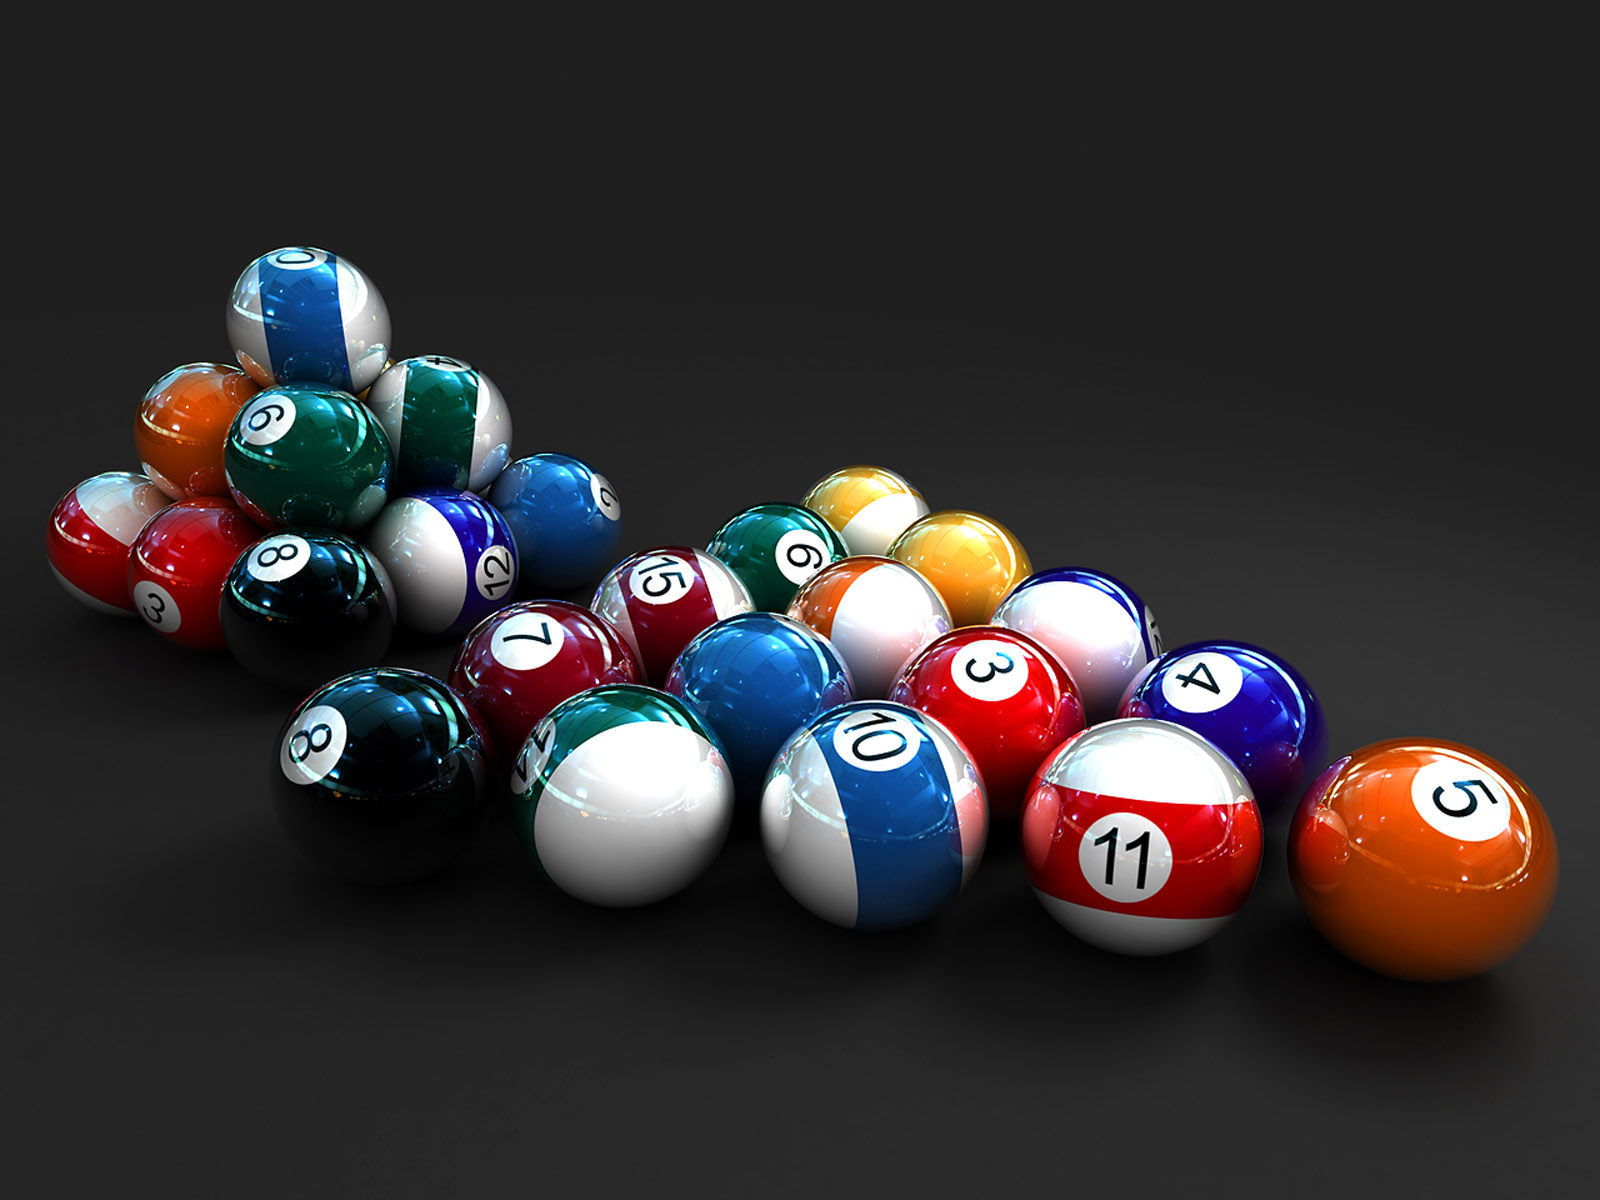 Billiards Wallpapers HD, Desktop Backgrounds, Images and Pictures 1600x1200